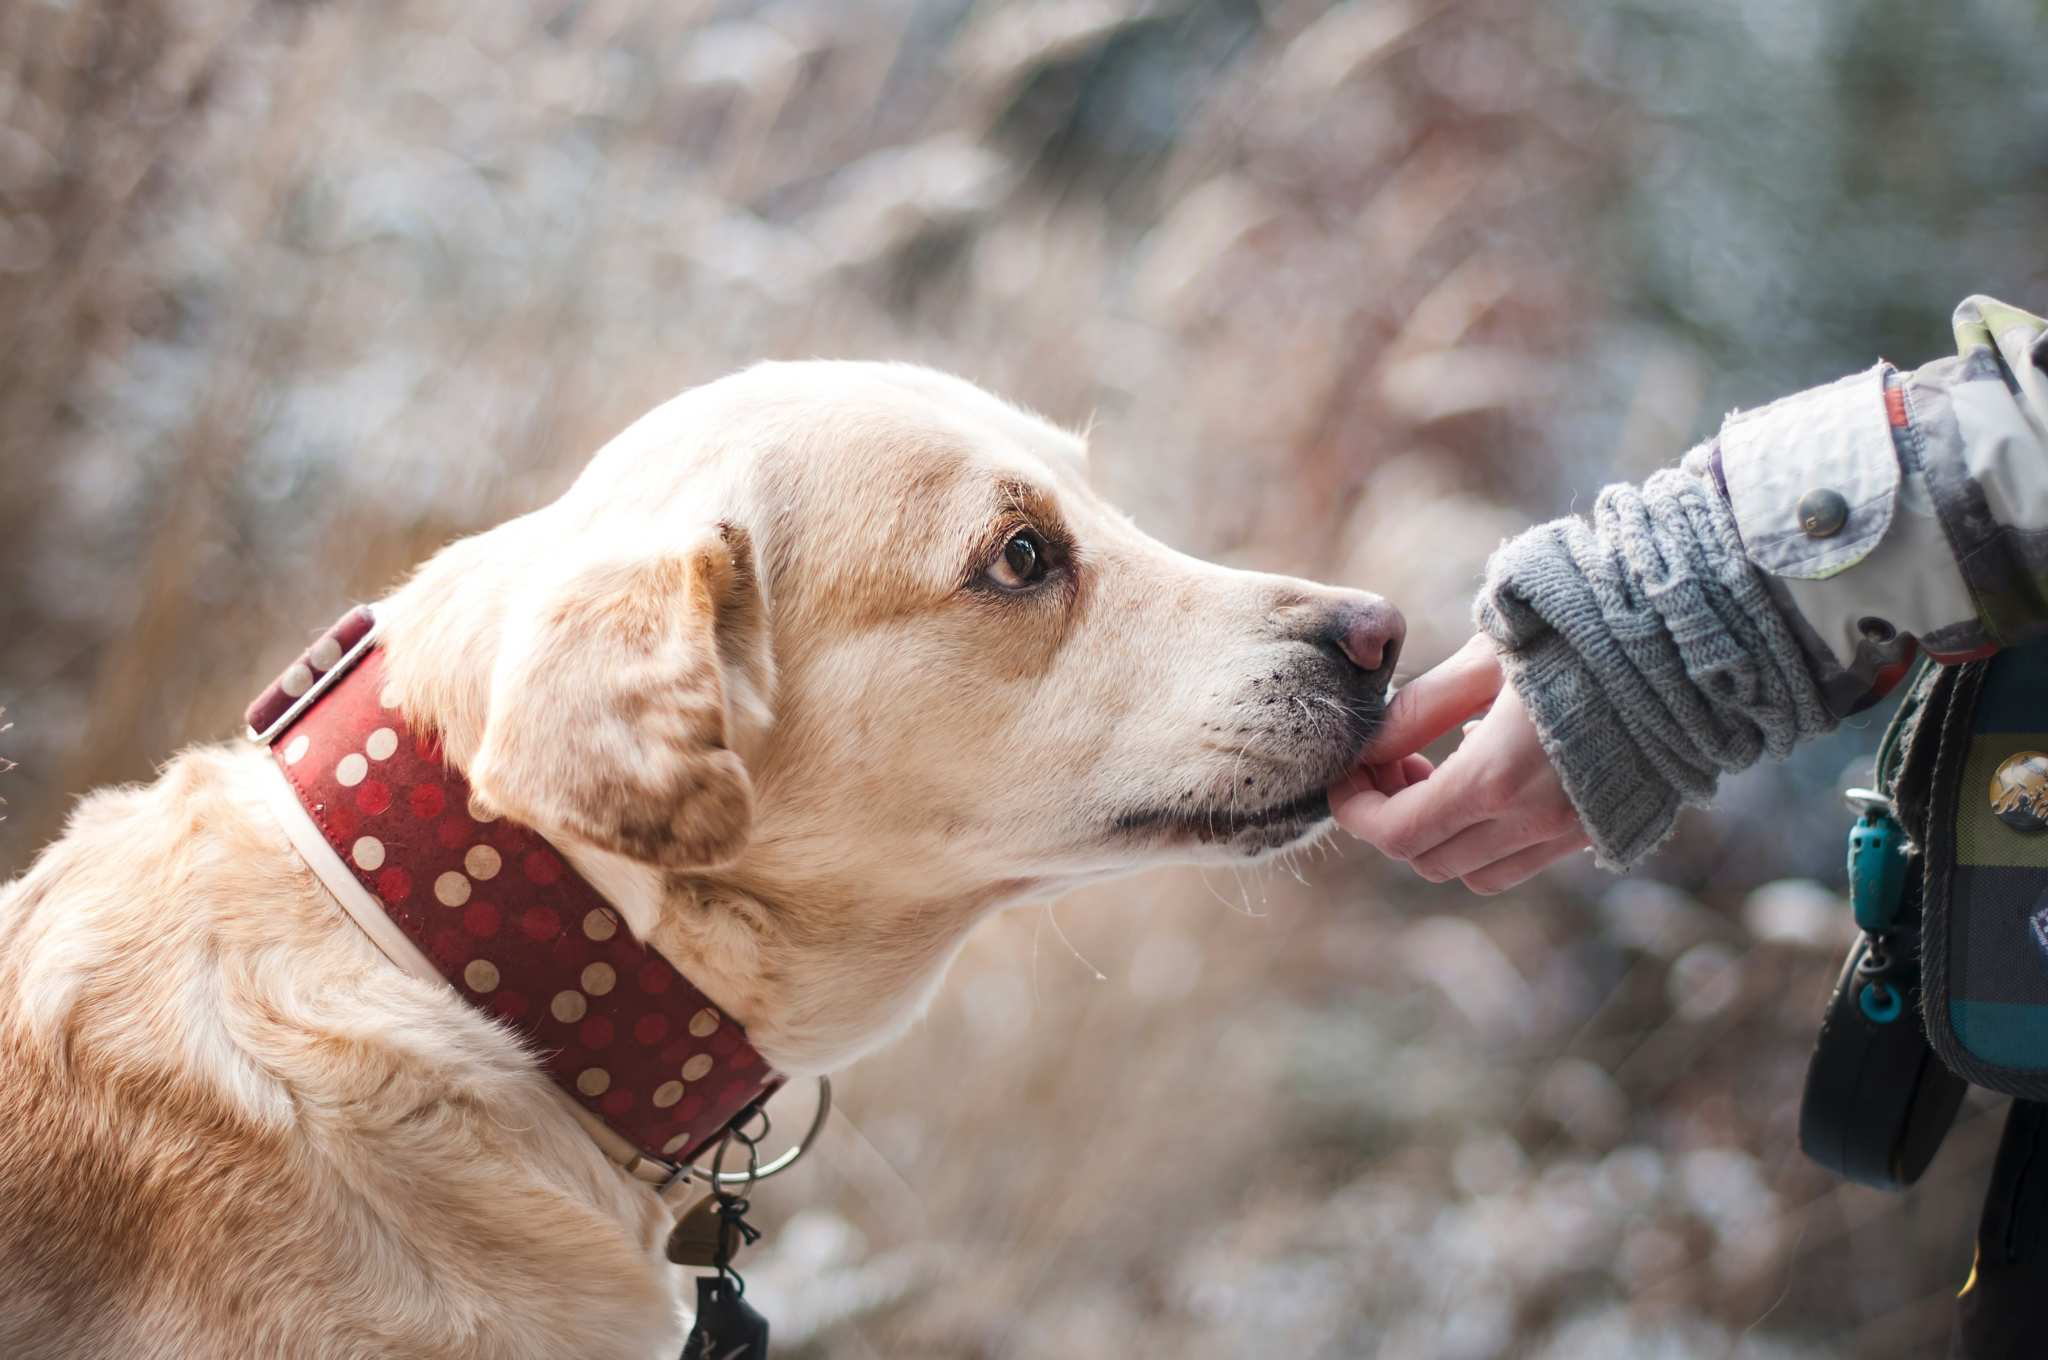 An older, white-furred dog in a thick red collar takes a treat from a hand while walking outside. Using CBD oil for dogs helps them feel better and more active despite the everyday aches and pains of aging.